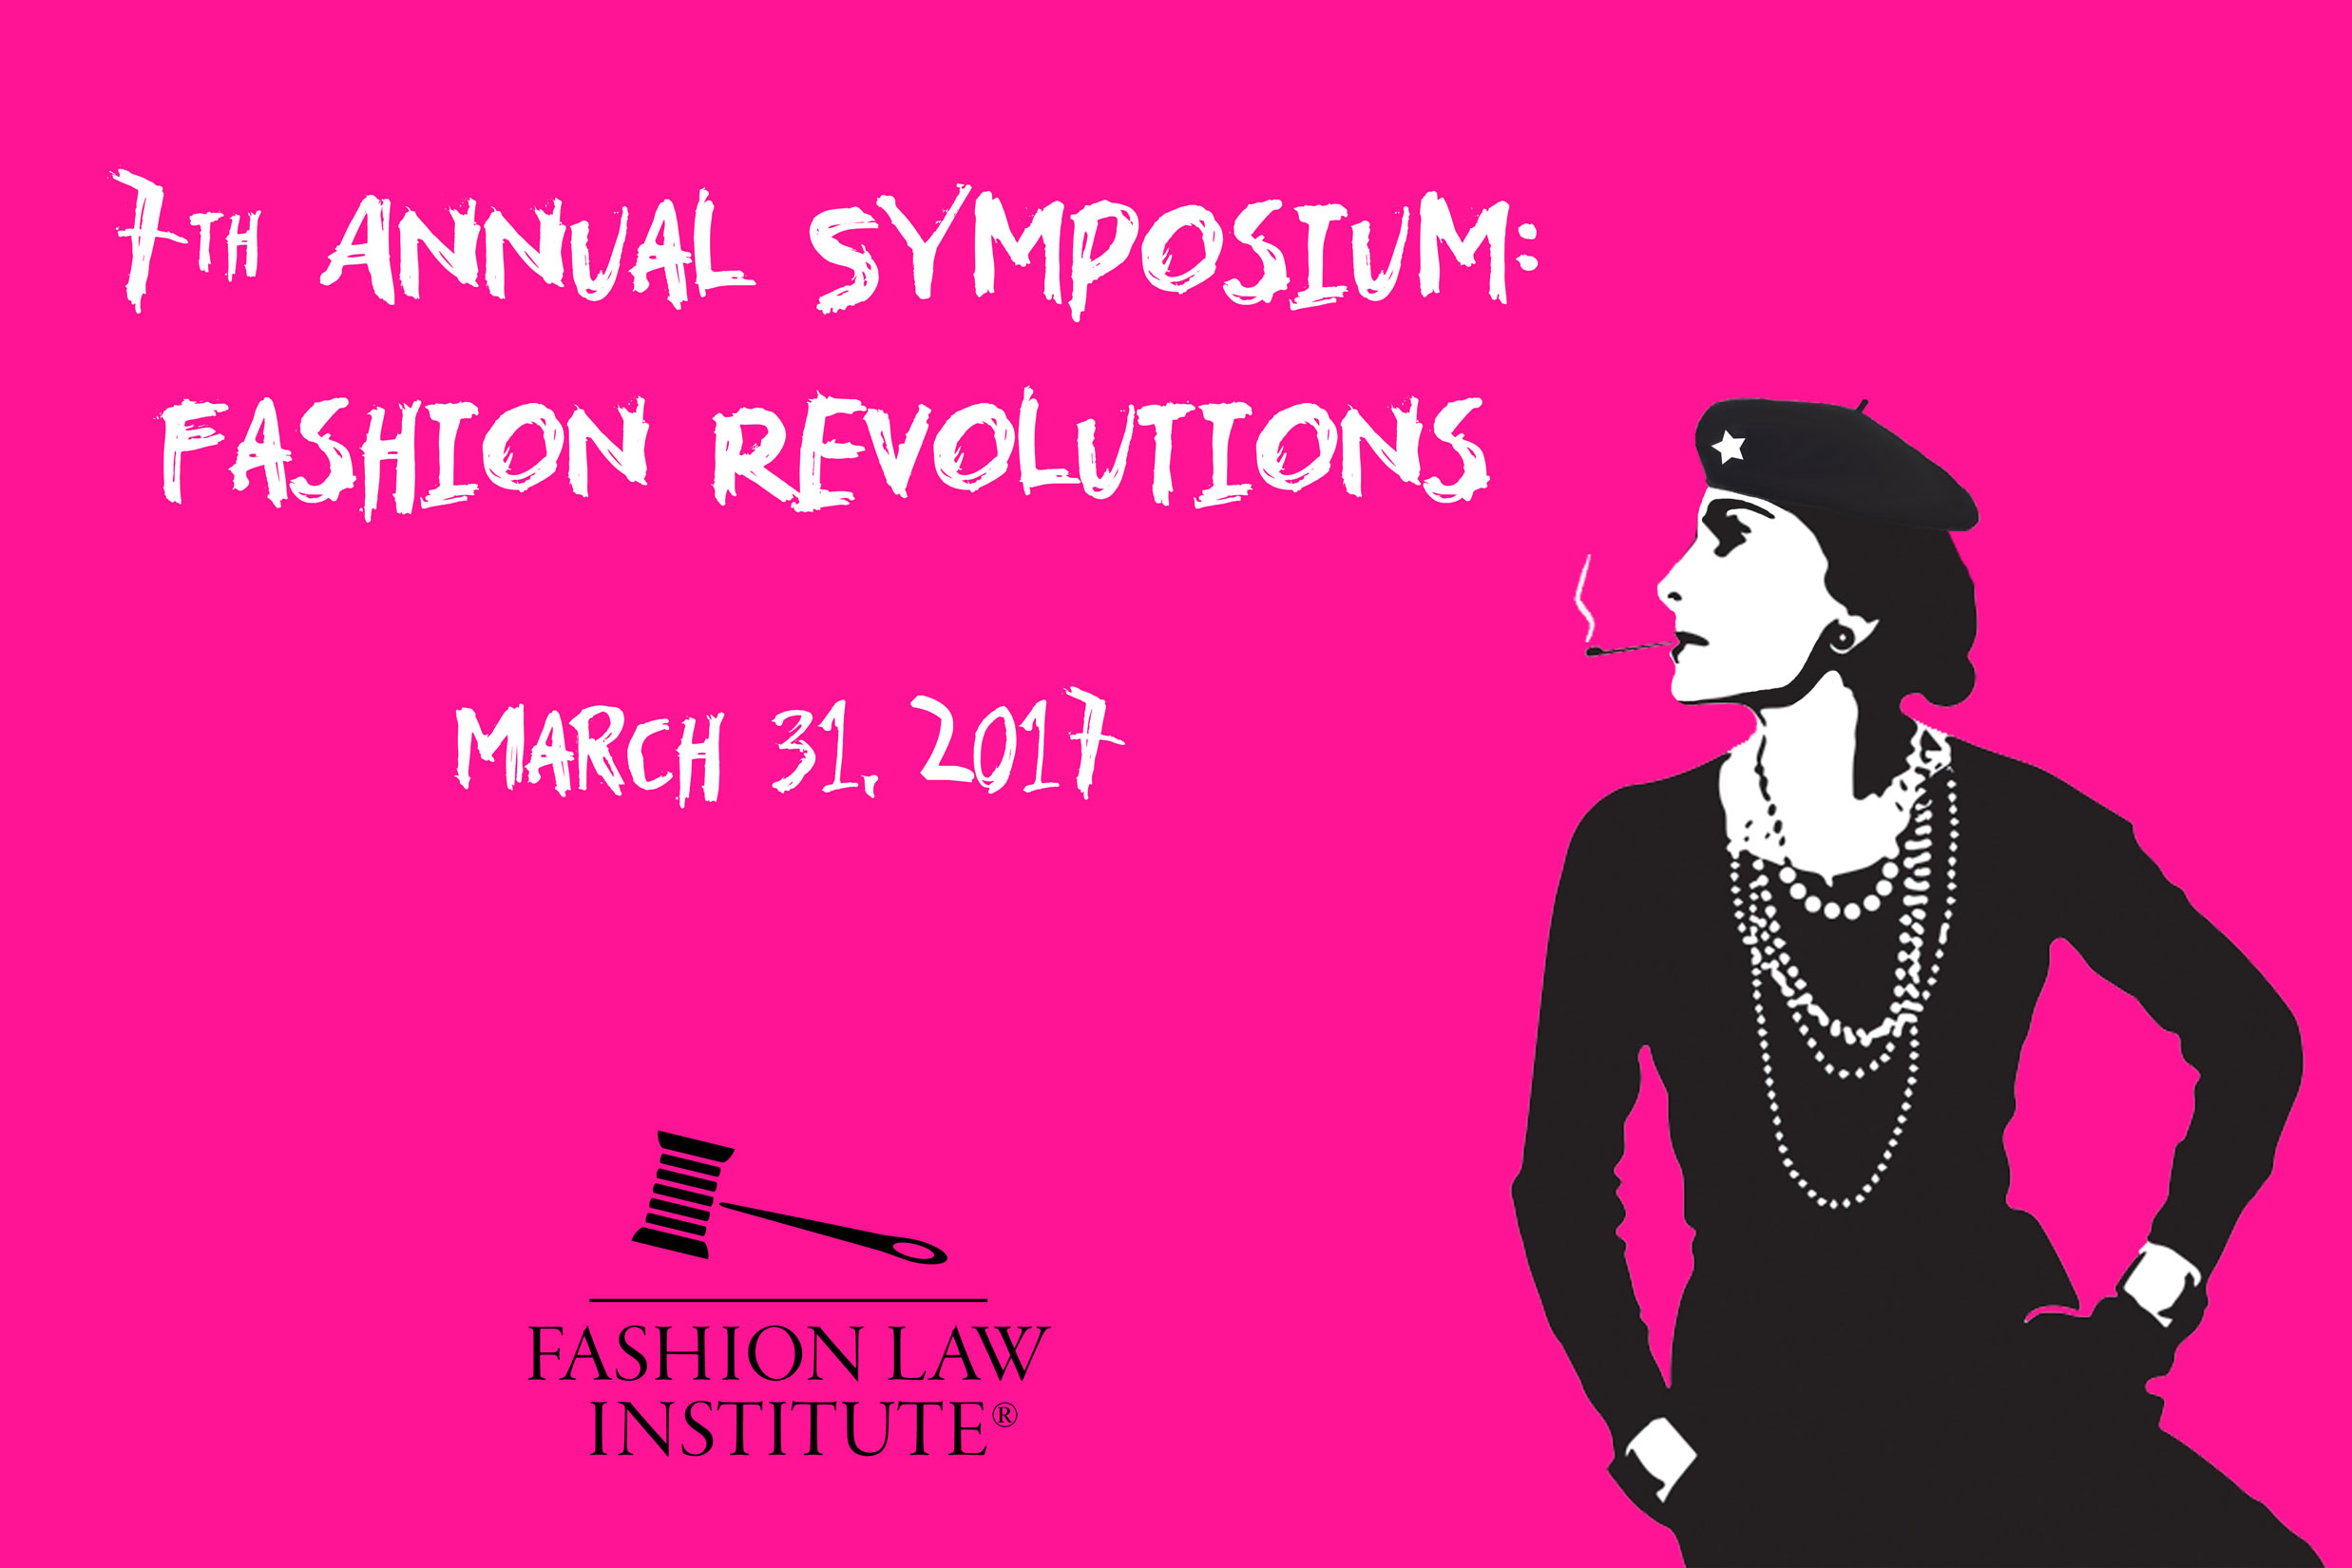 Fashion Revolutions - 7th Annual Fashion Law institute Symposium